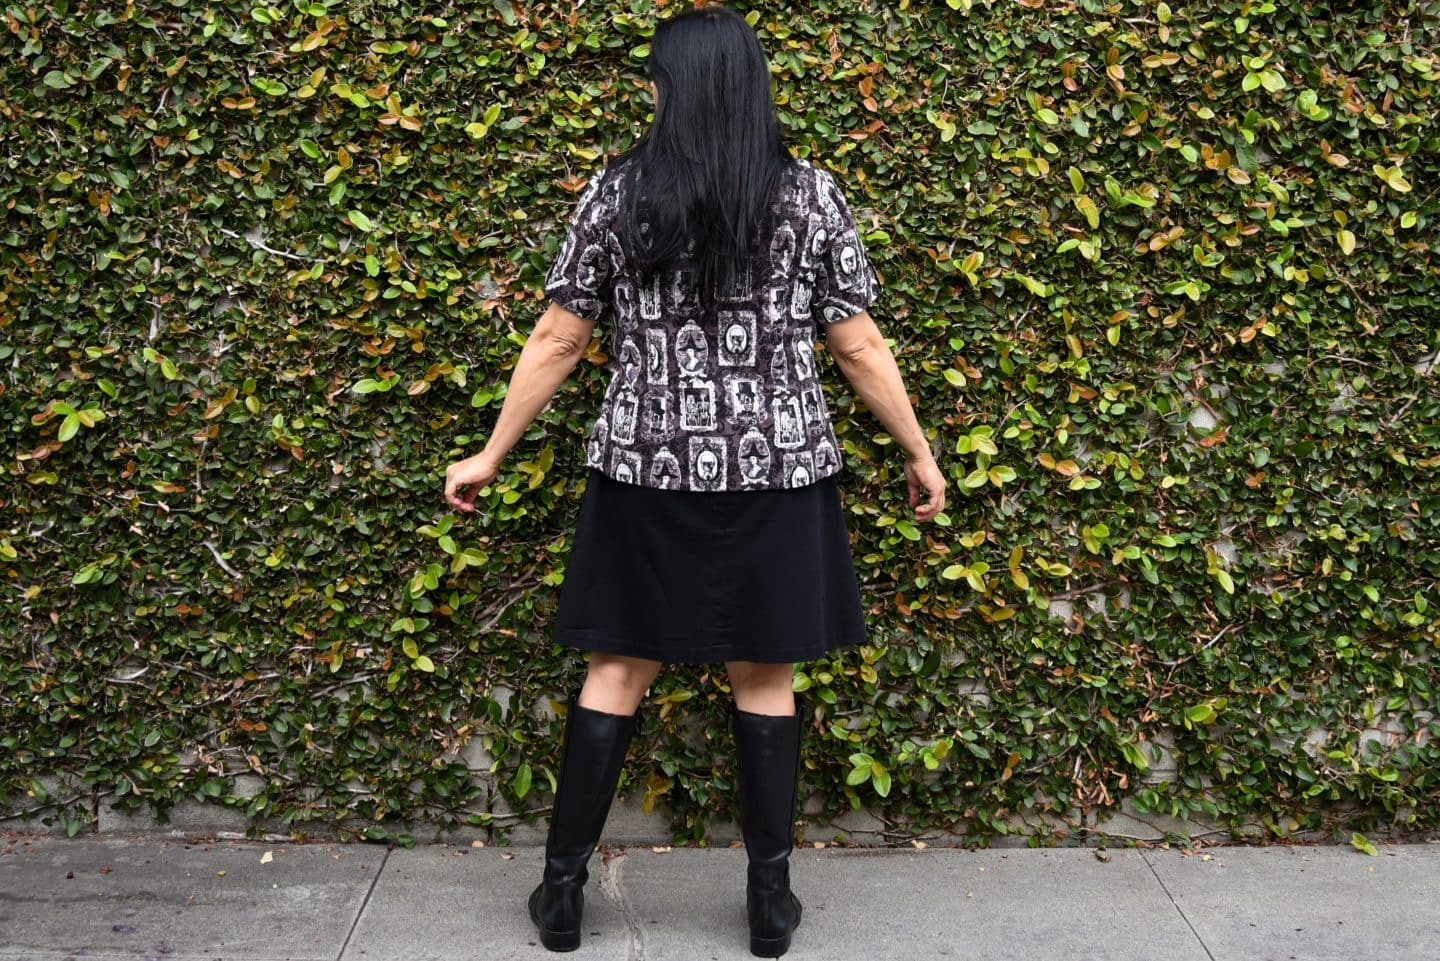 Image of a woman with long black hair standing with her back to the camera in front of a wall covered in vine wearing a short-sleeved buttoned up shirt with a purple, black, and white print of skeletons in picture frames, black knee-length skirt, and black boots to her knees